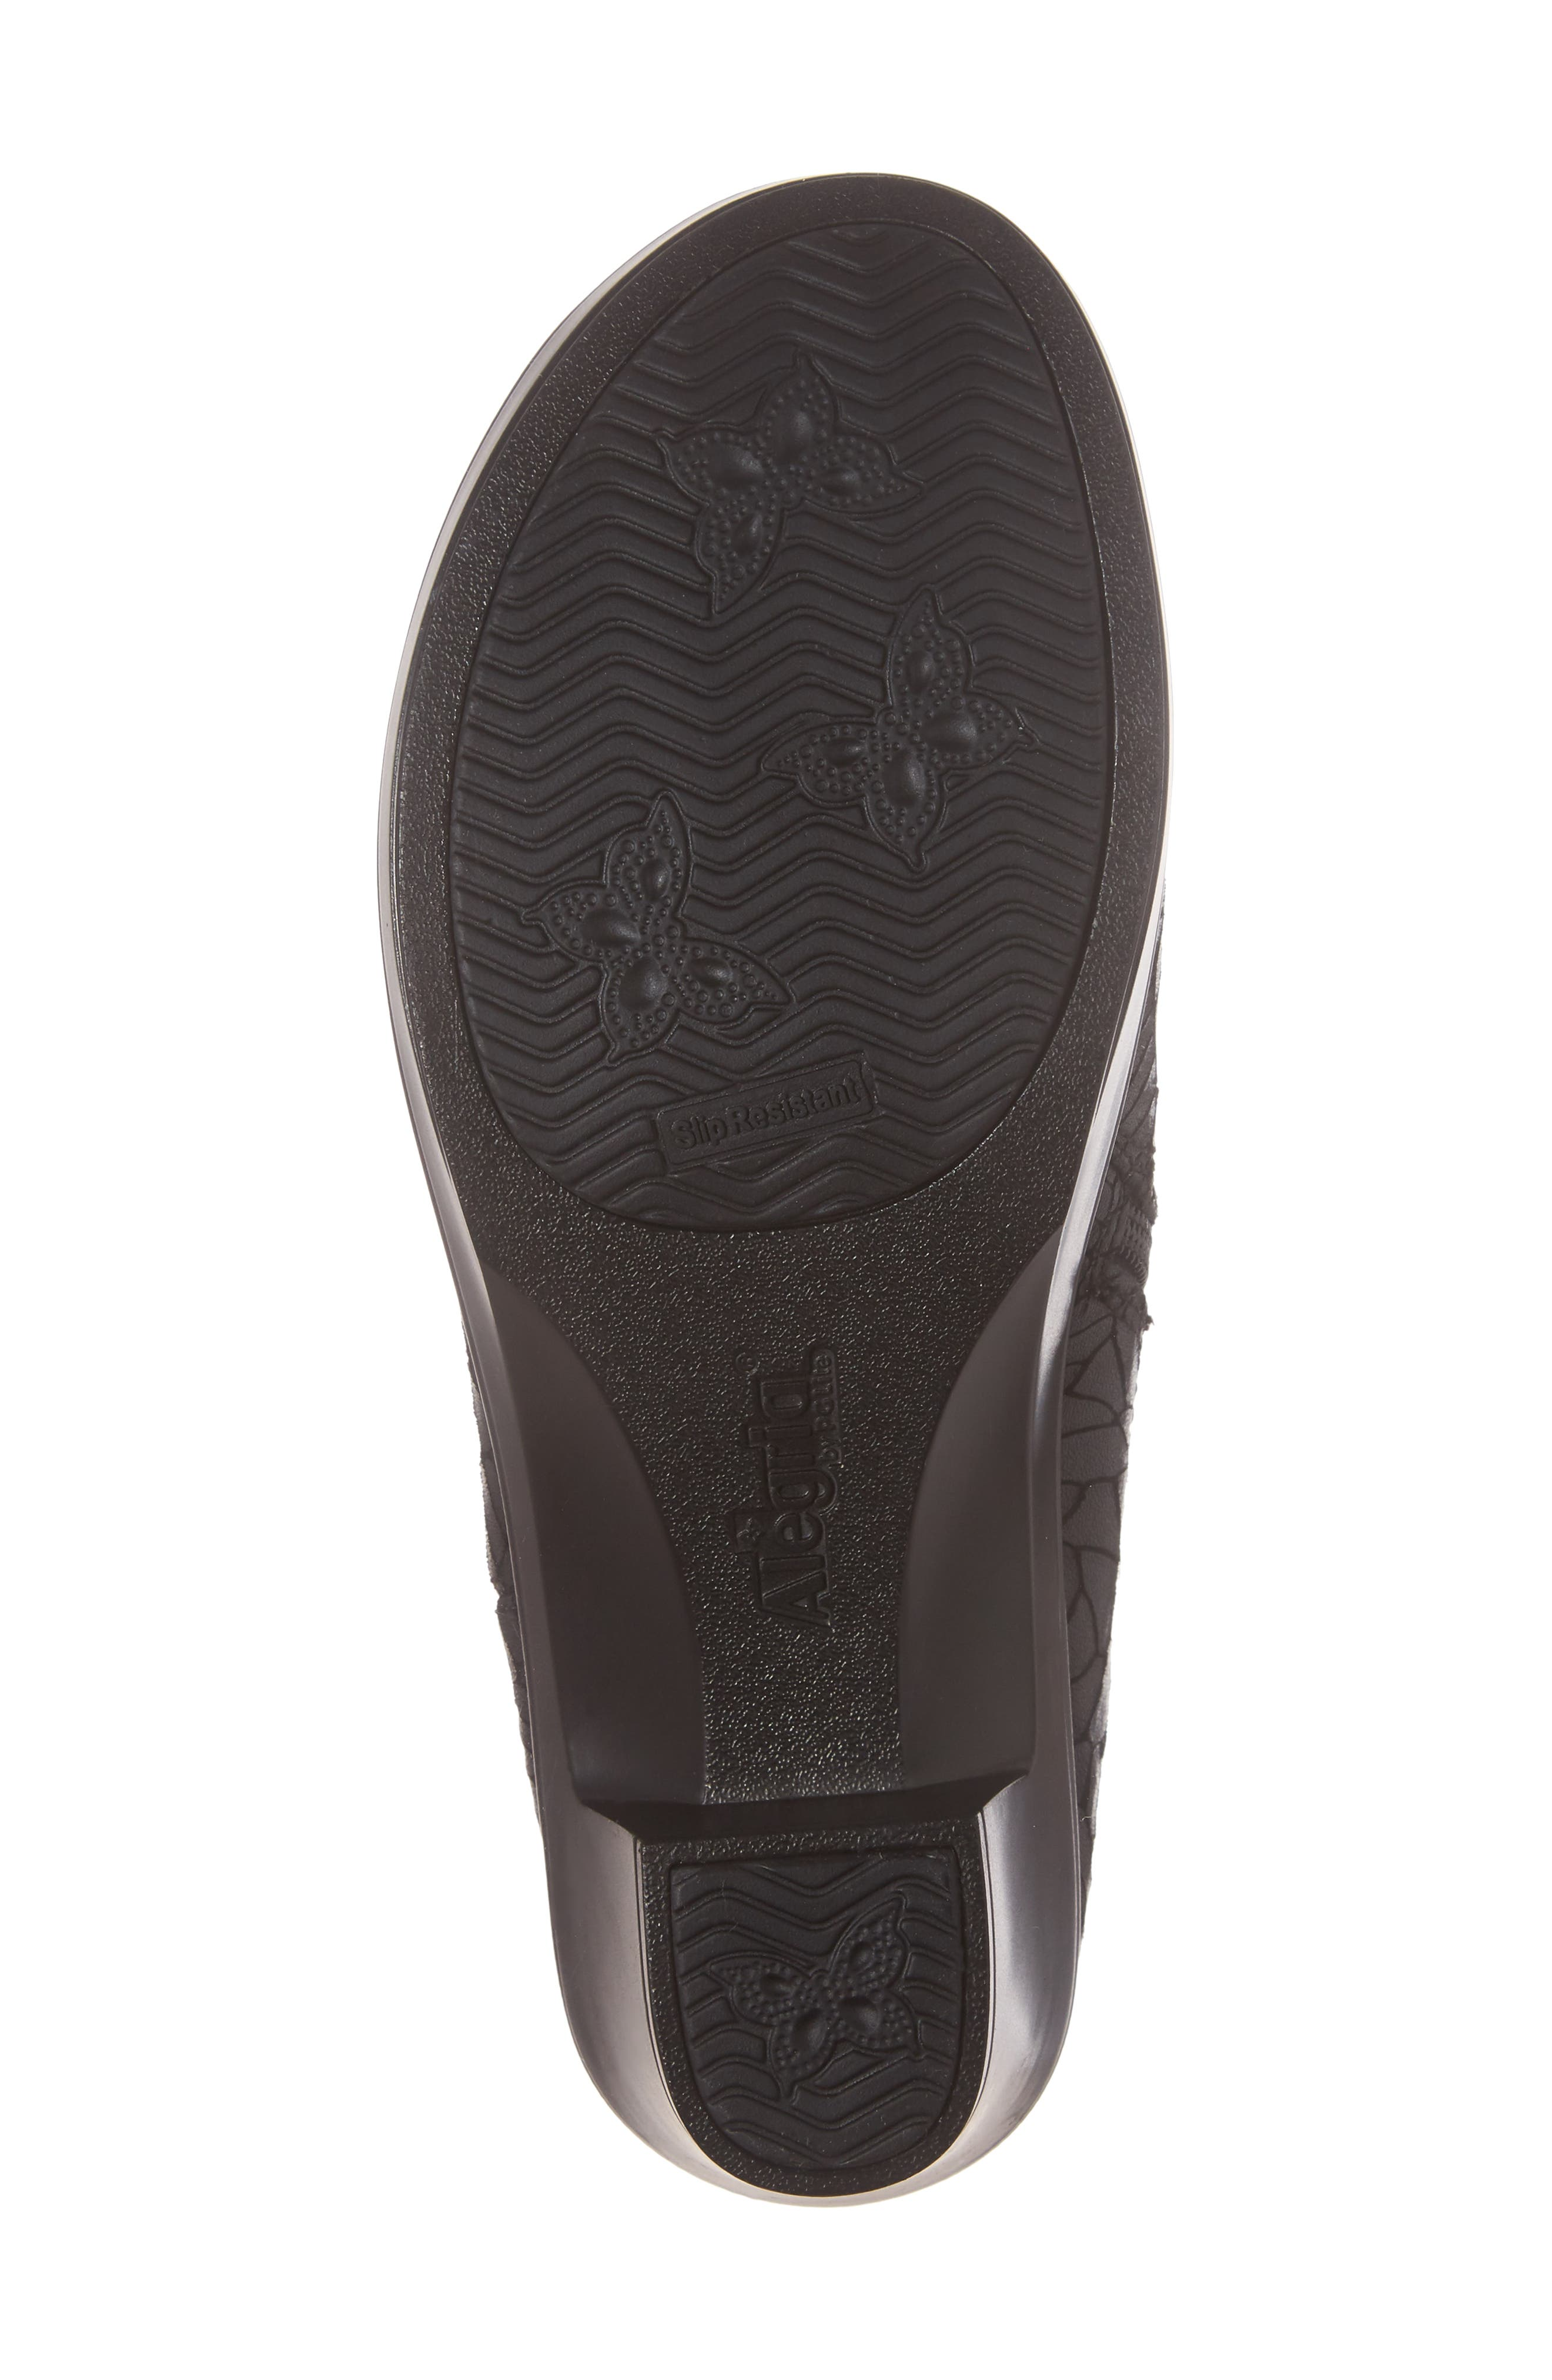 Hayden Bootie,                             Alternate thumbnail 6, color,                             FLORAL NOTES LEATHER